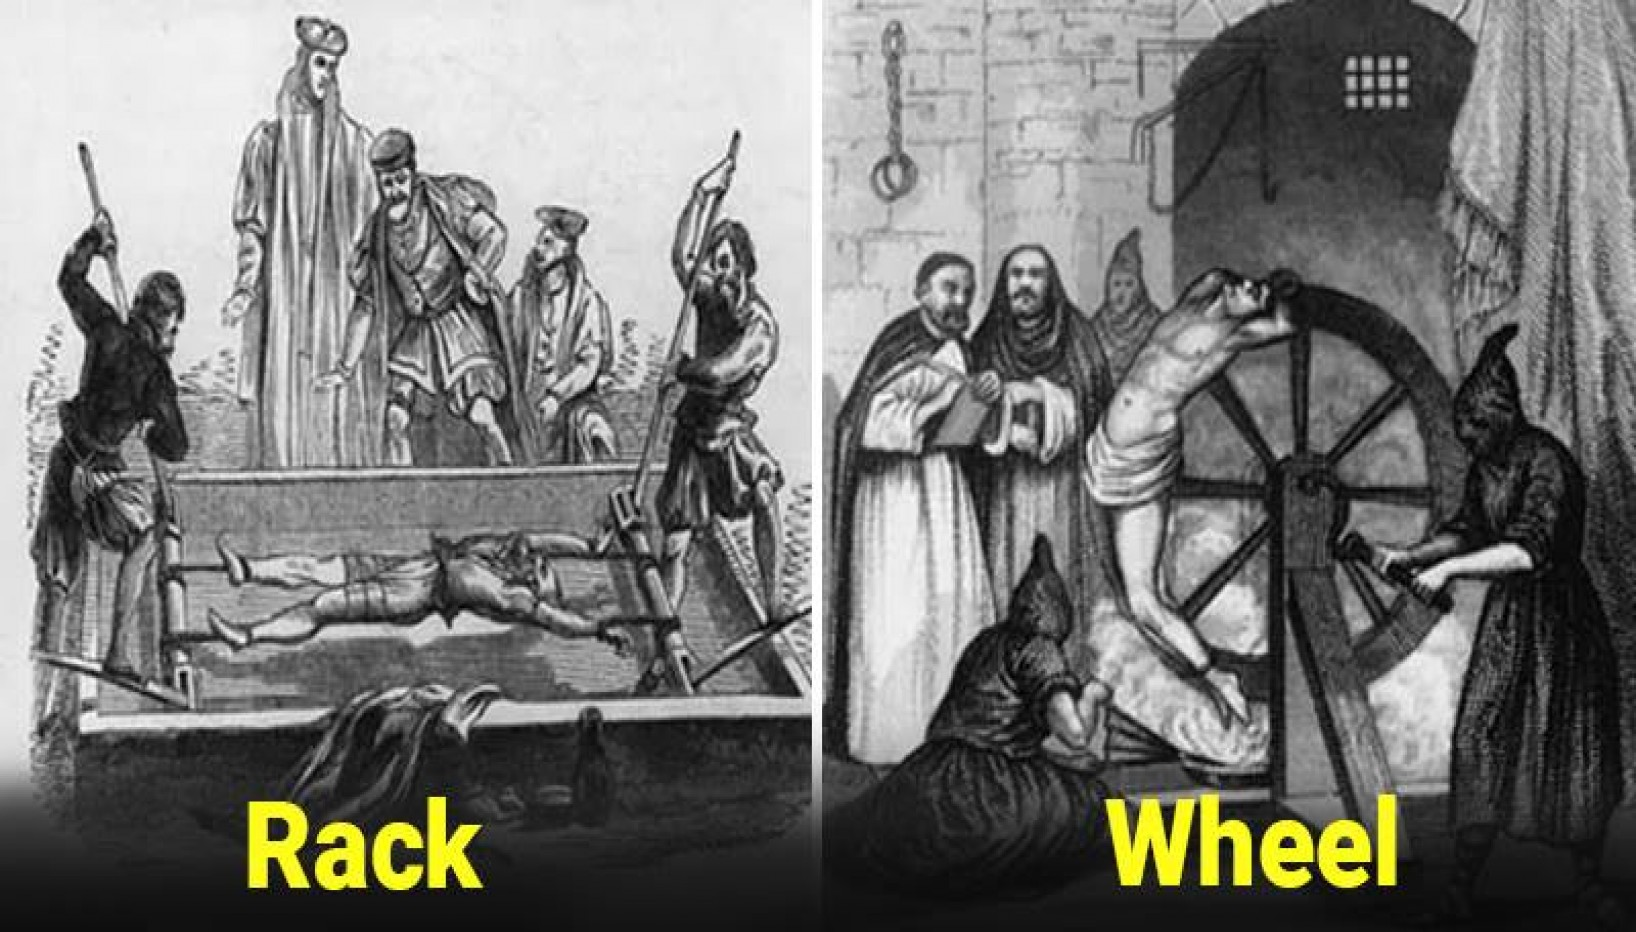 How Were People Tortured In The Past? Here Are Some Horrific Yet Interesting Medieval Torture Devices